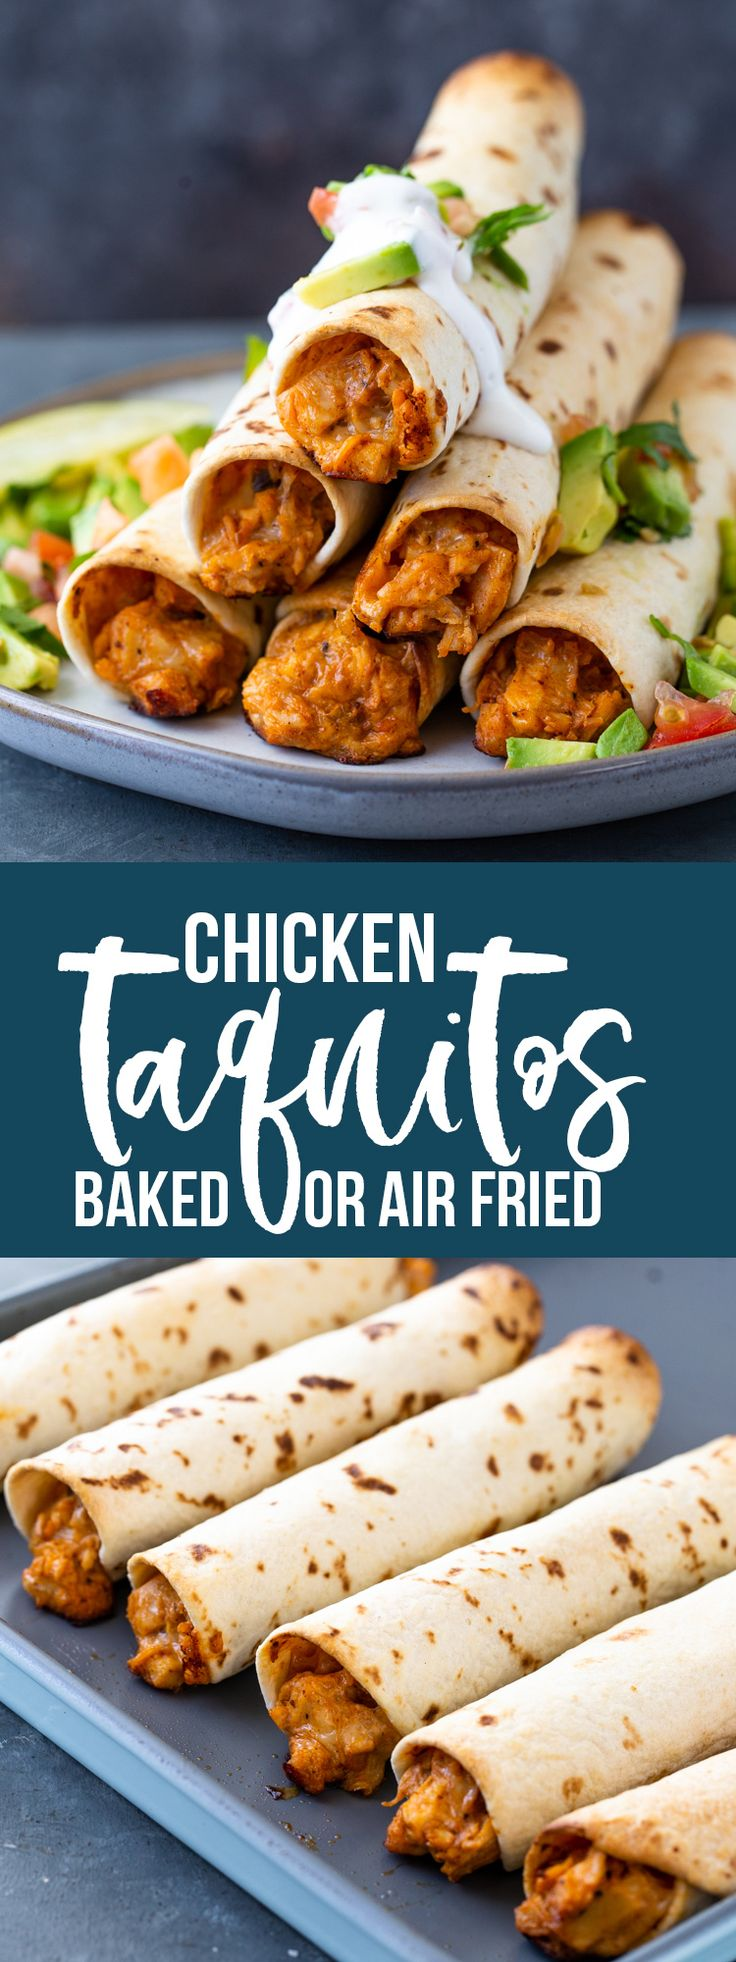 Chicken Taquitos (Baked or AirFryer) Gimme Delicious